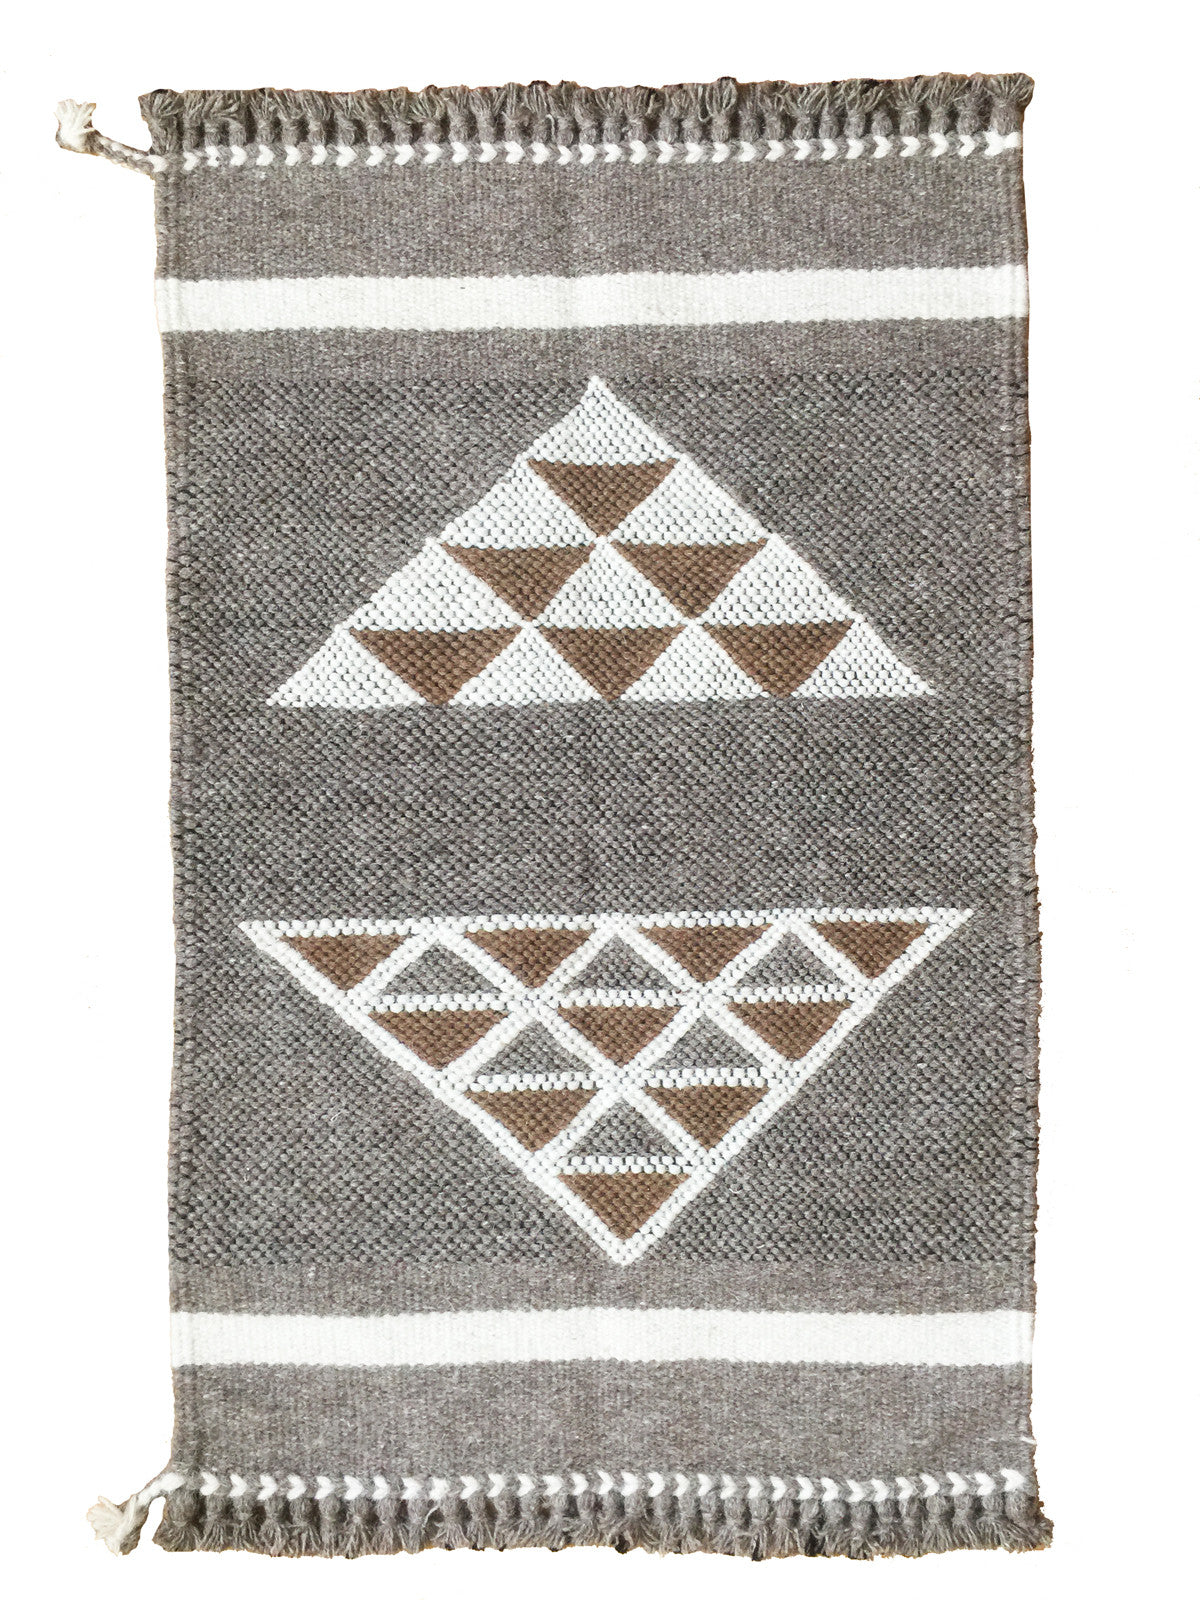 Handwoven wall hangings and rugs! 100% undyed sheep wool. Made by master weavers in Kutch, India.